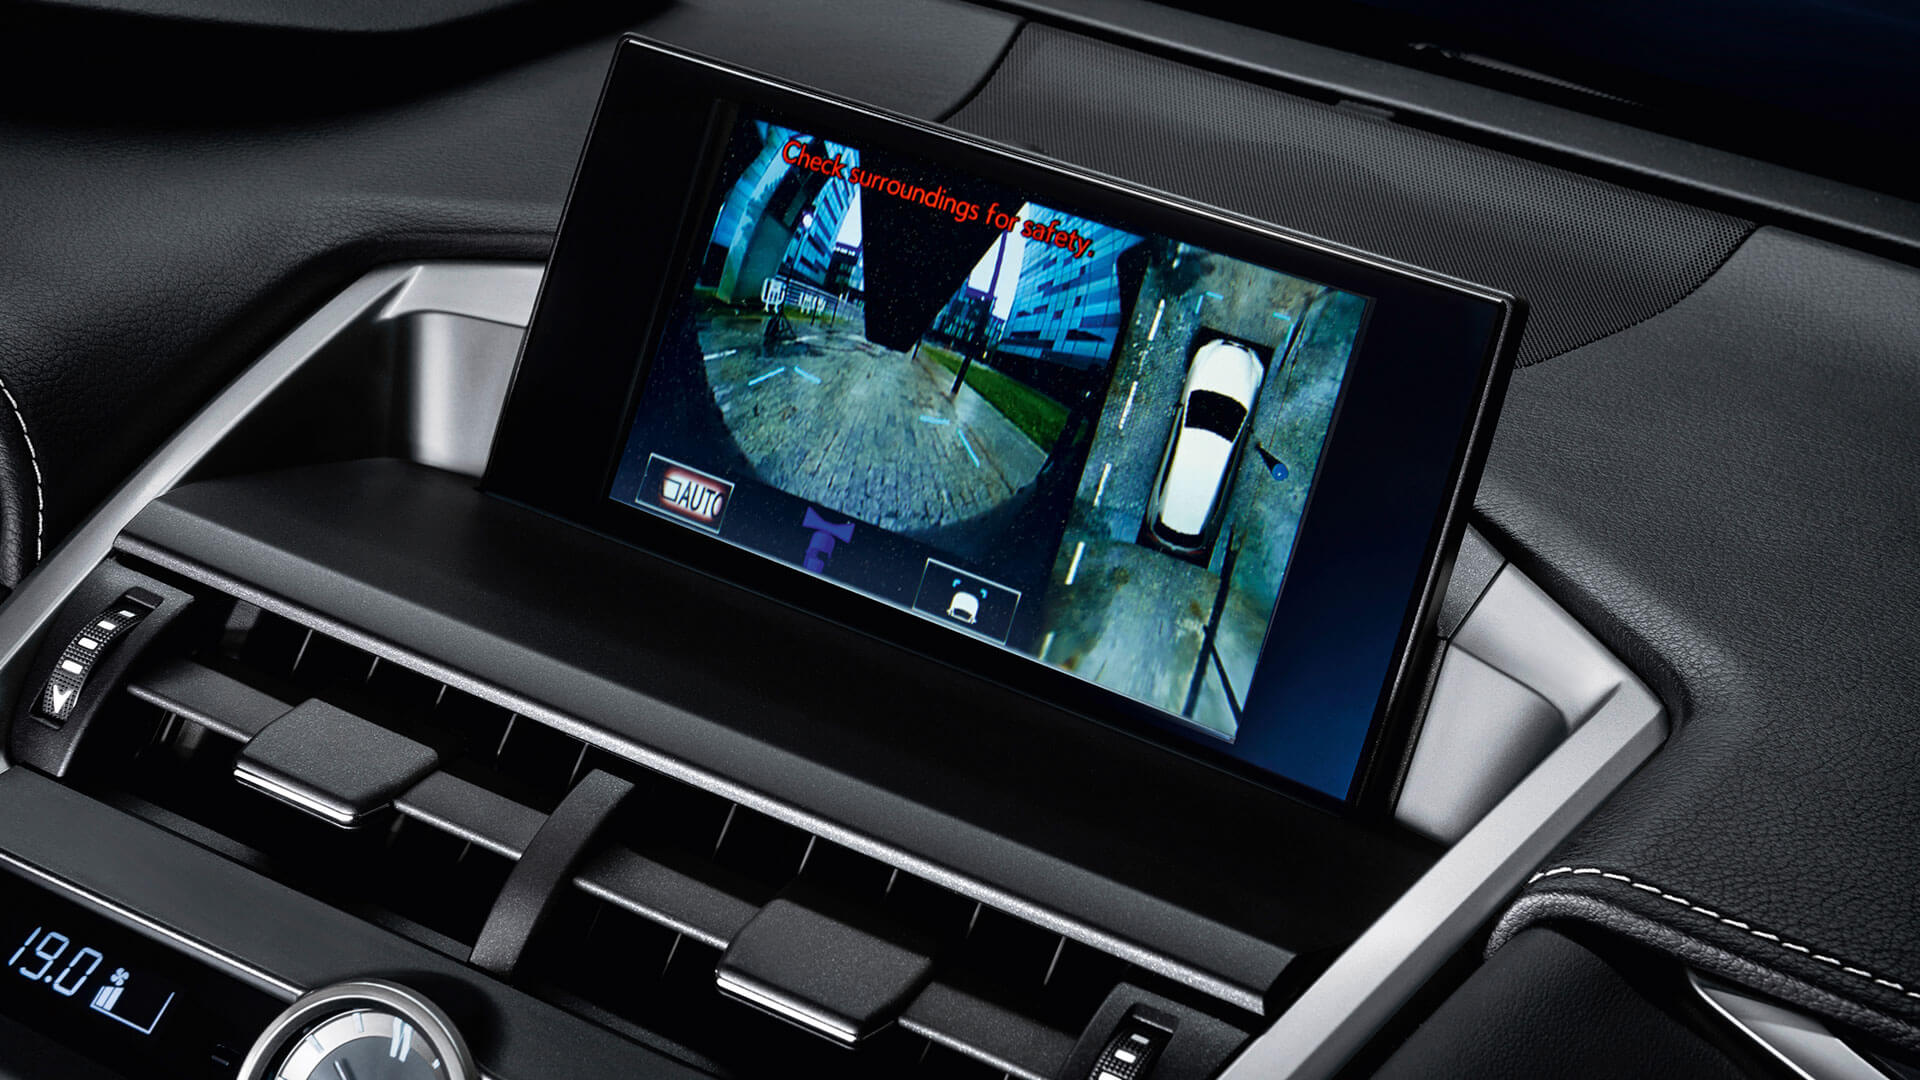 2017 lexus nx 200t features panoramic monitor